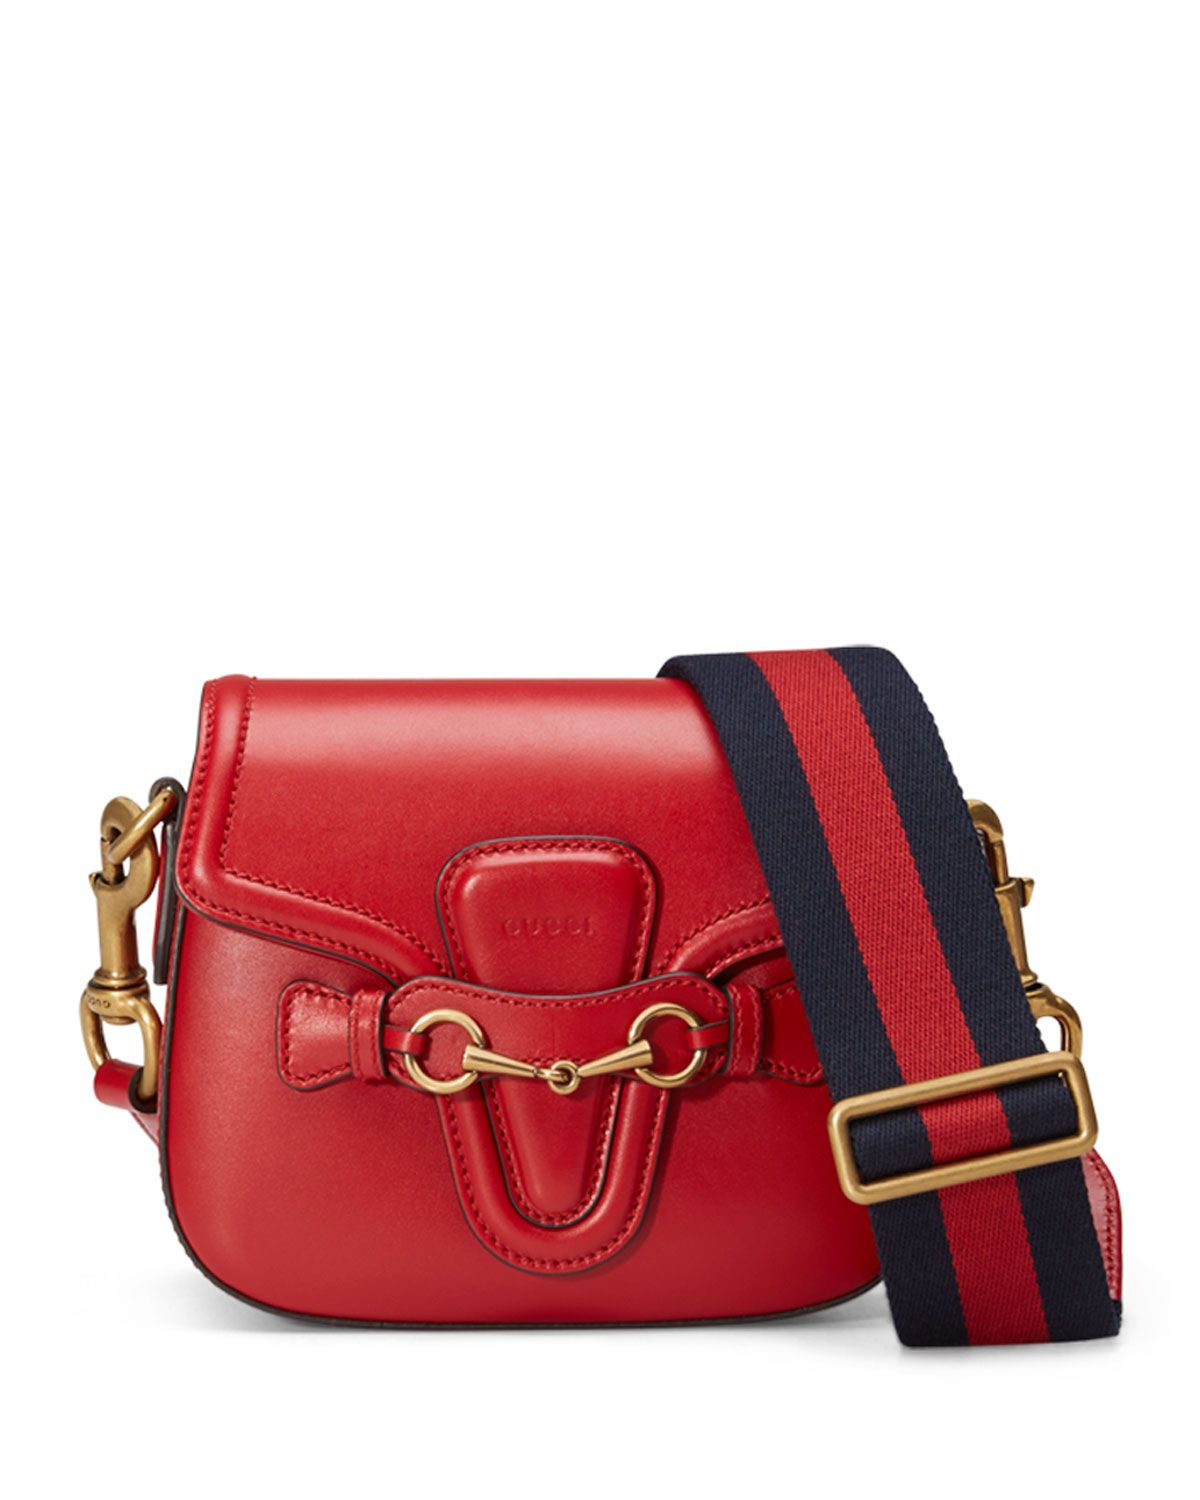 3490f2651be7 Lady Web Medium Leather Shoulder Bag Red | *Neiman Marcus* | Bags ...